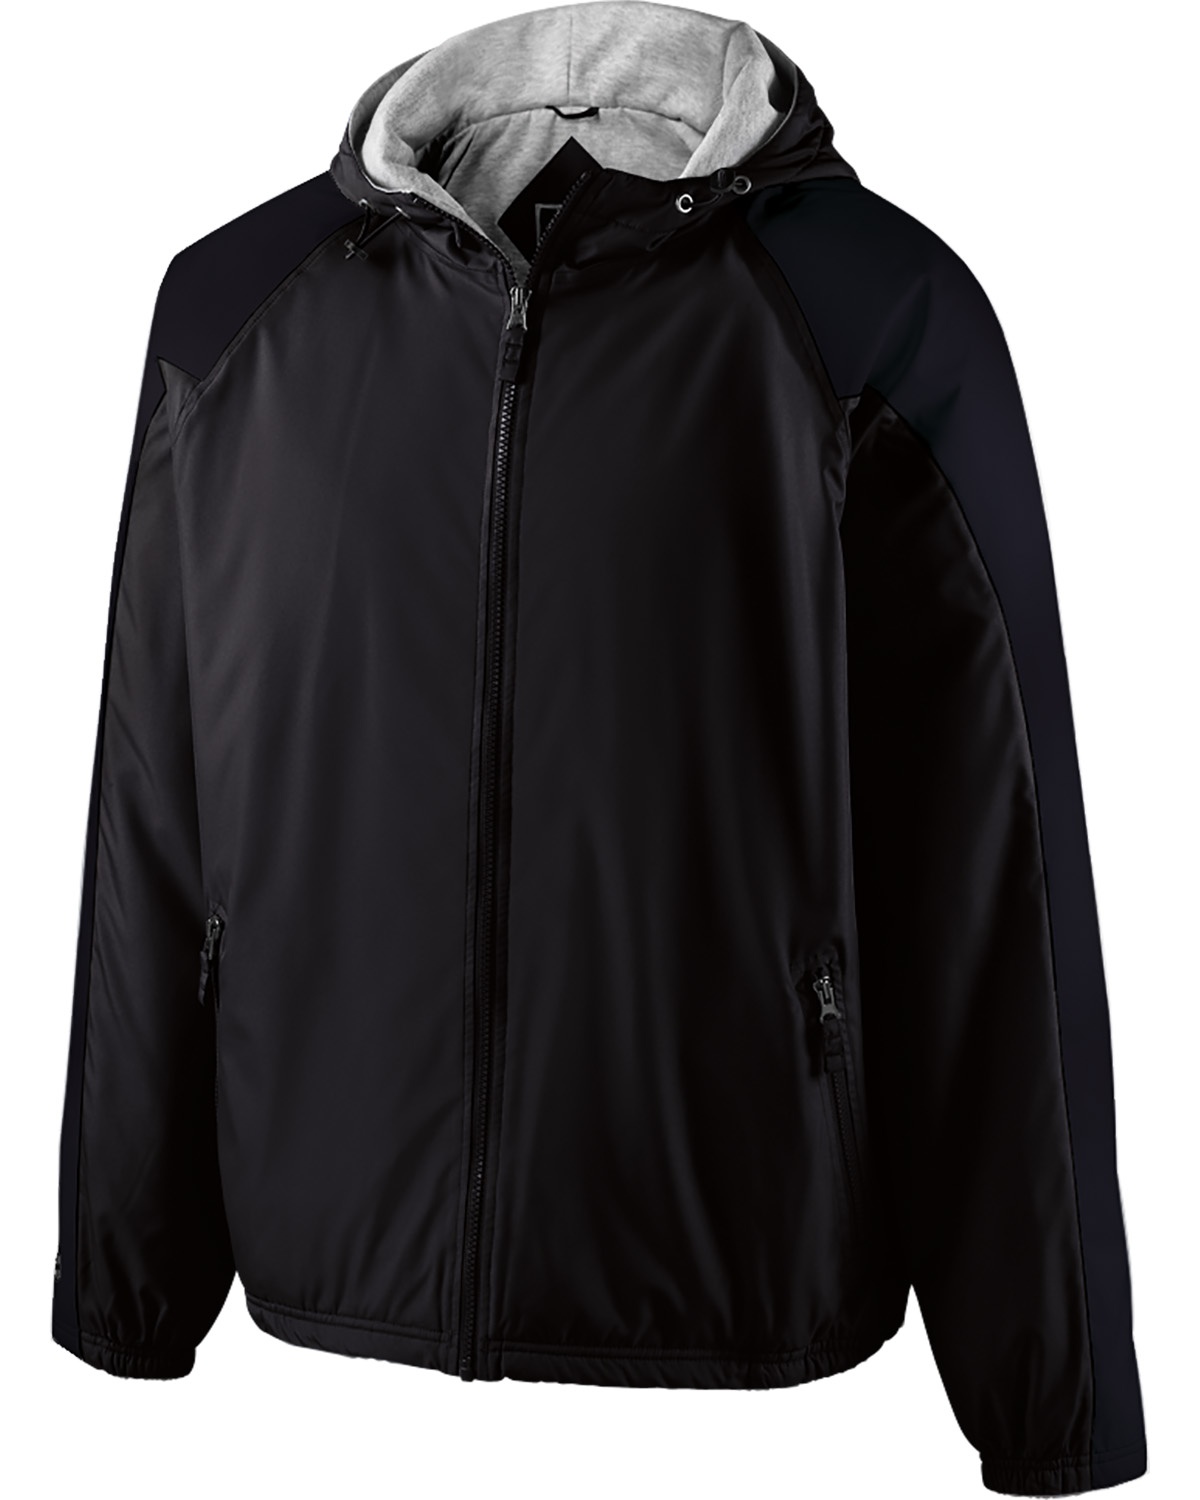 Holloway 229111 - Adult Polyester Full Zip Hooded Homefield Jacket